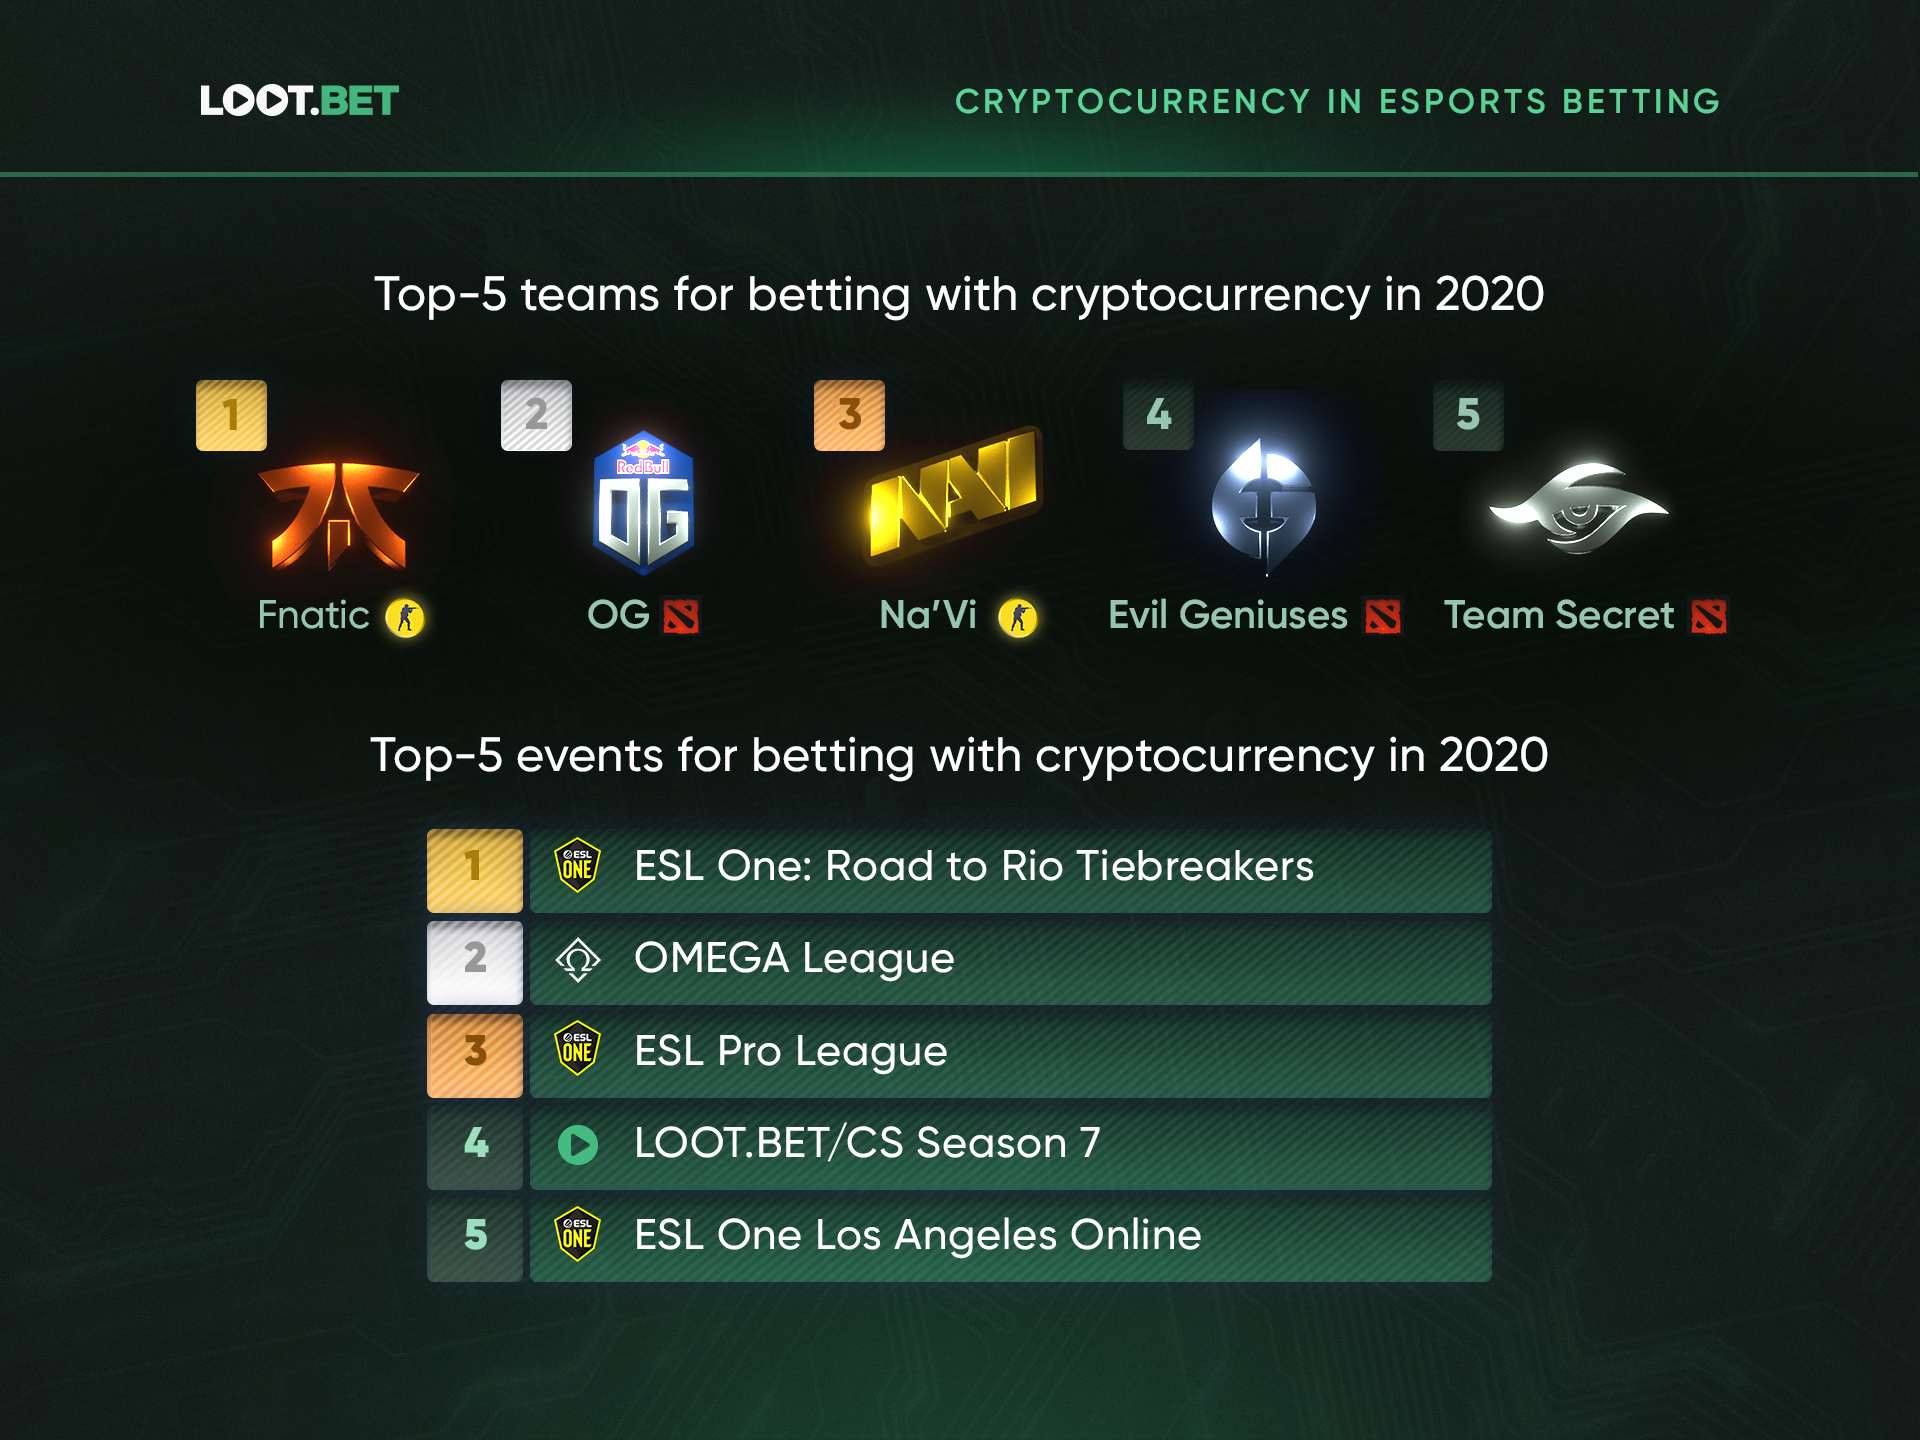 Crypto Esports Betting 6 - Research Reveals Cryptocurrency Owners to Be the Riskiest Esports Bettors